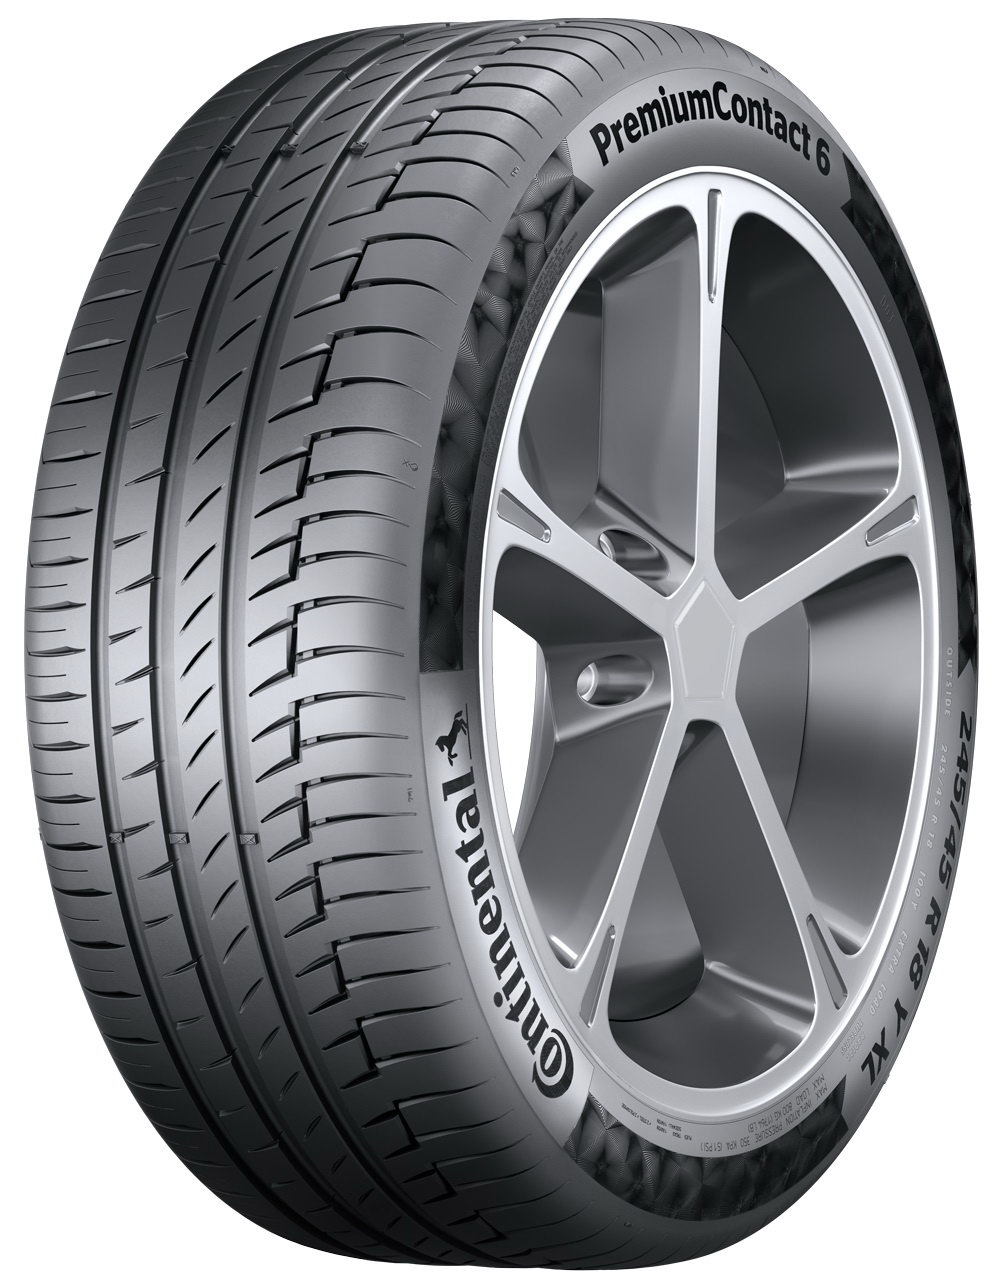 Anvelope vara CONTINENTAL PREMIUM CONTACT 6 245/40 R18 93Y